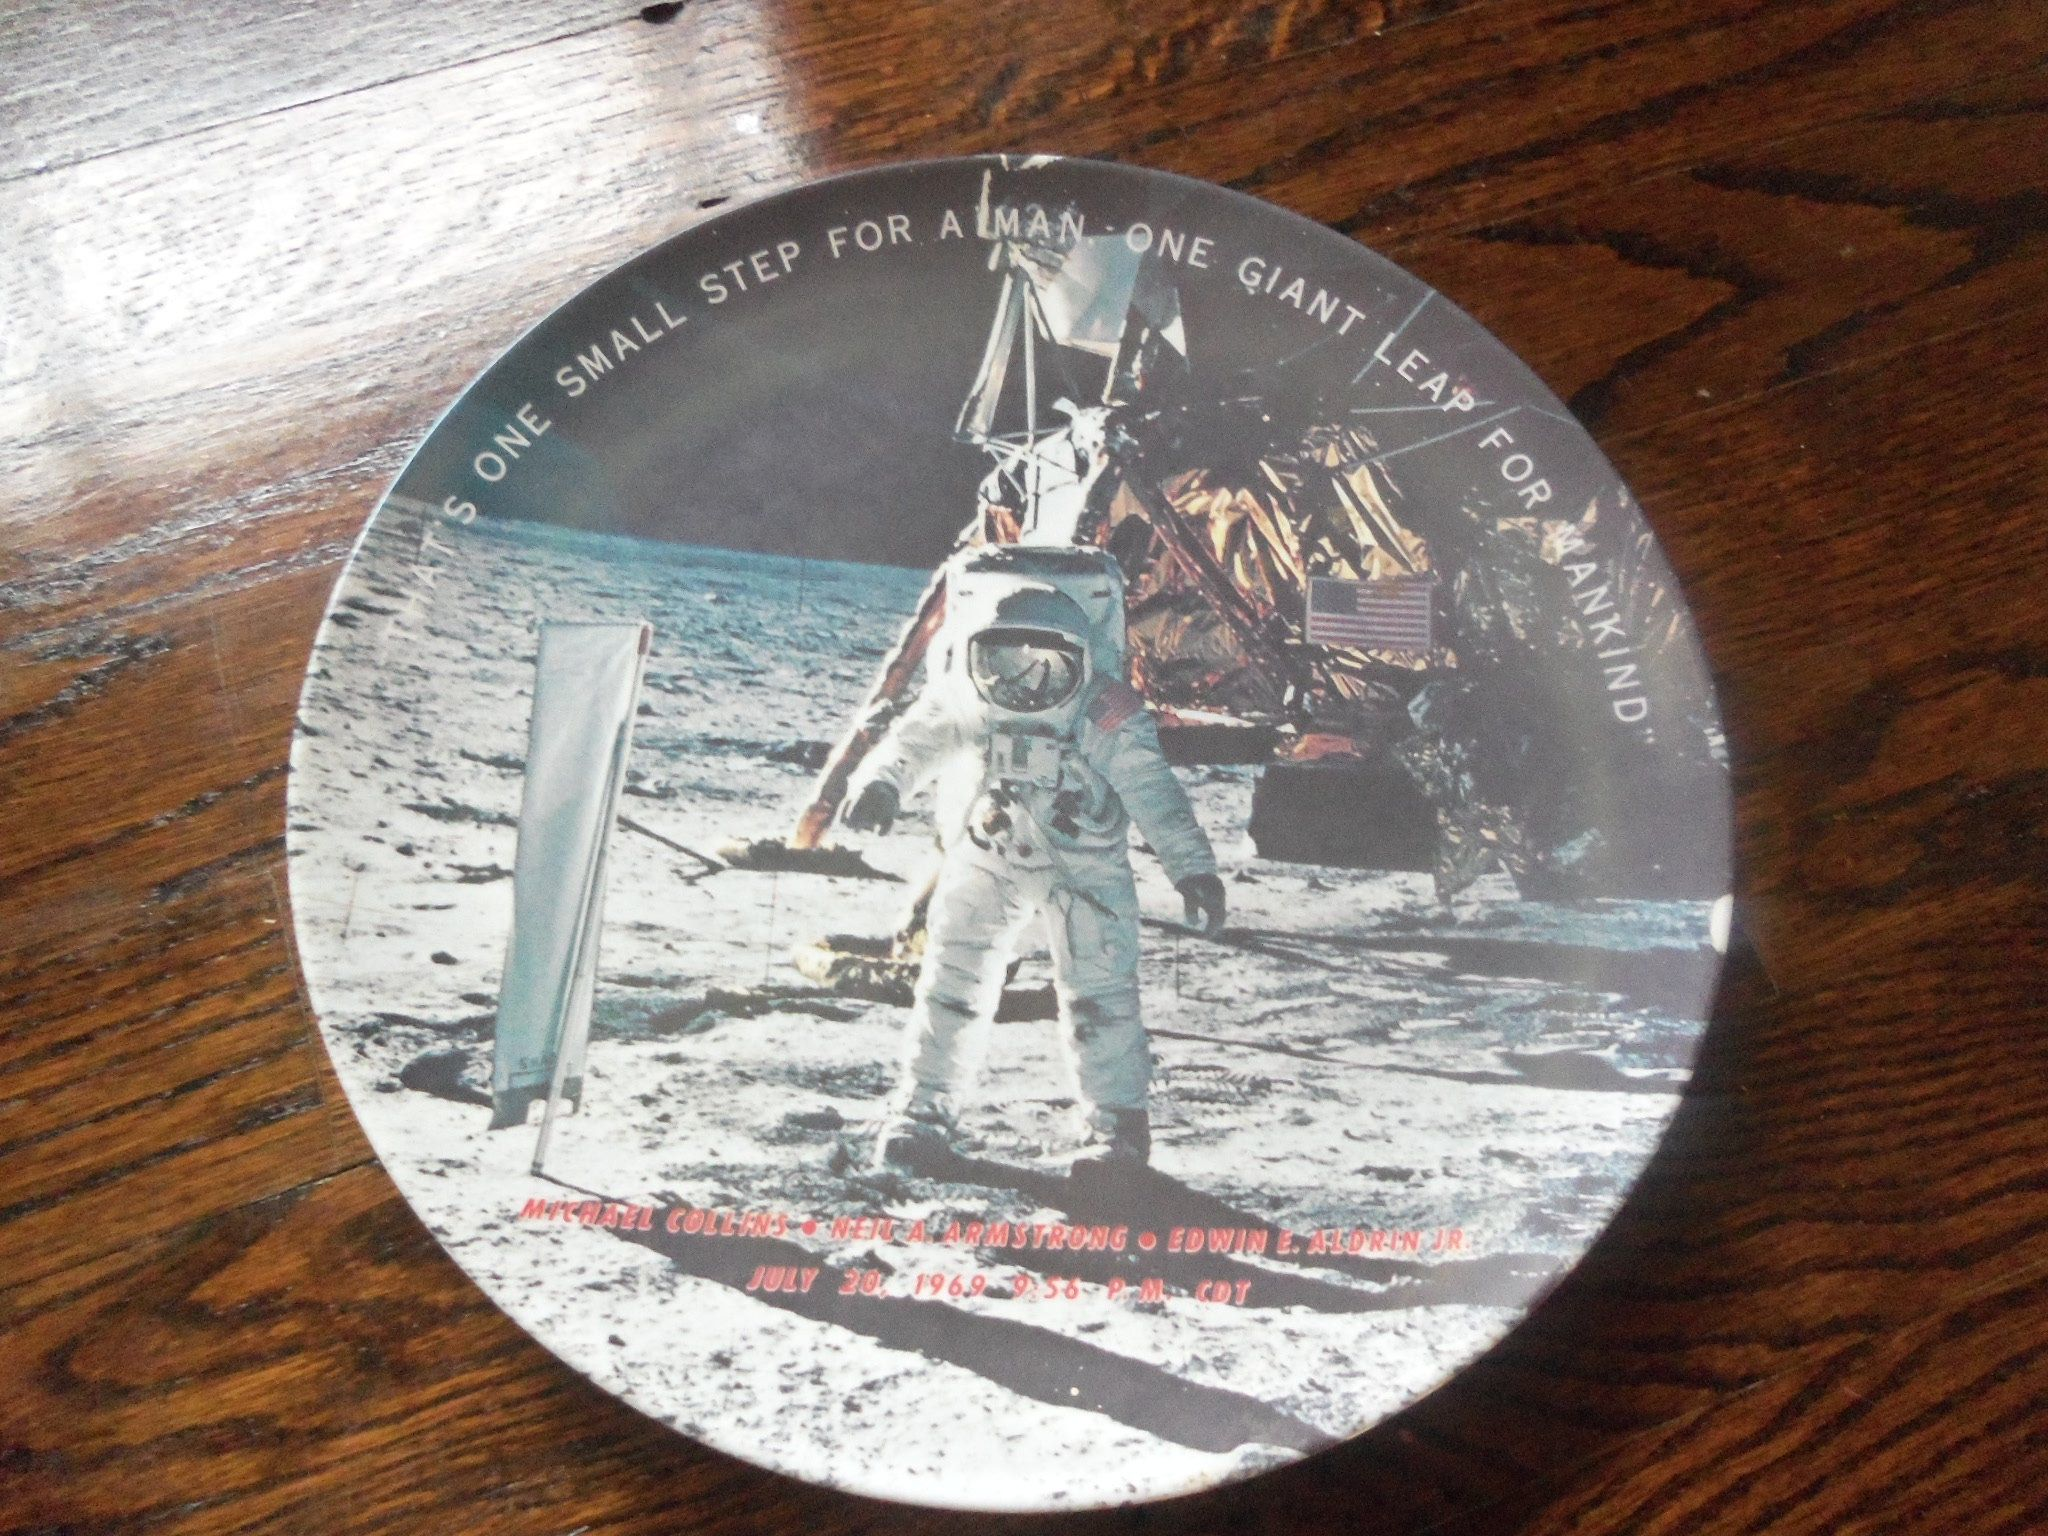 Vintage Neil Armstrong Commemorative Plate Moon Landing Texas Ware 1969 One Giant Leap For Mankind